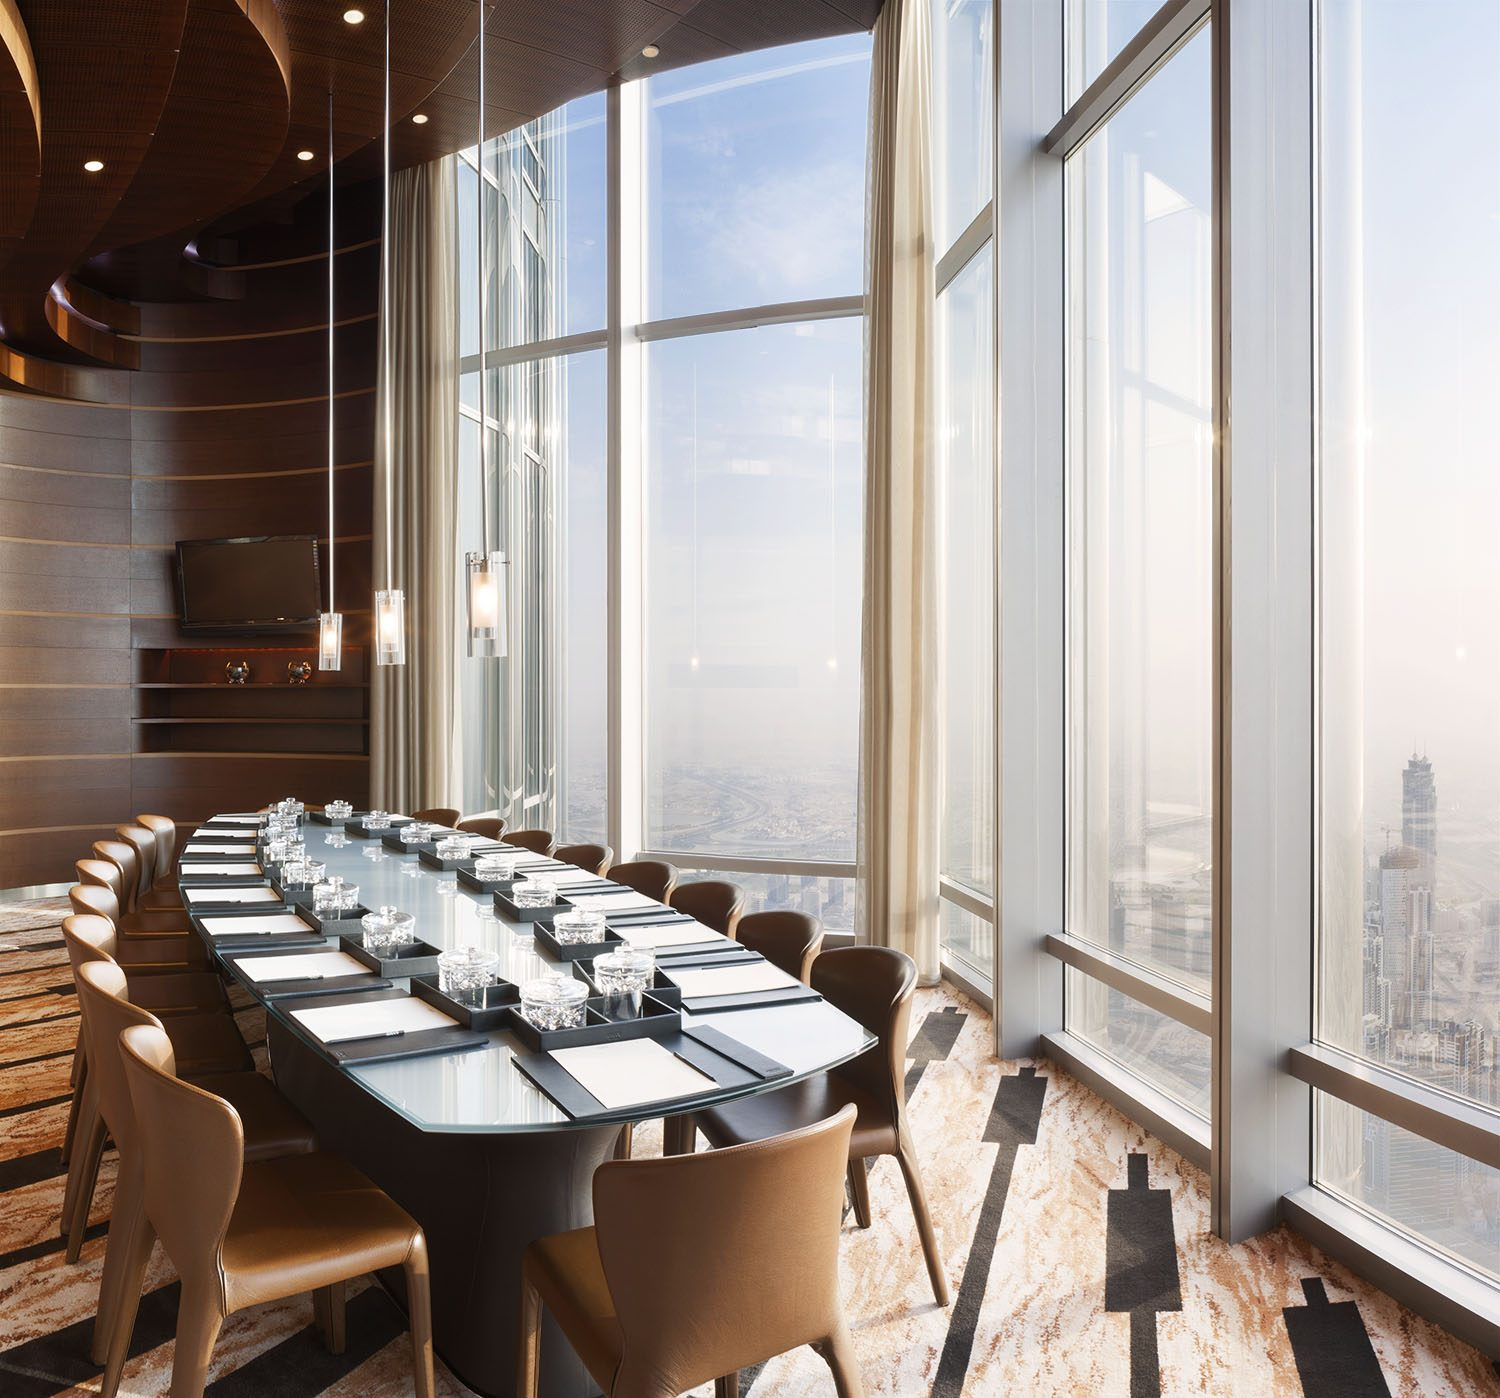 An interior photograph of The Armani Hotel meeting room in the Burj Khalifa, Dubai by photographer, Duncan Chard